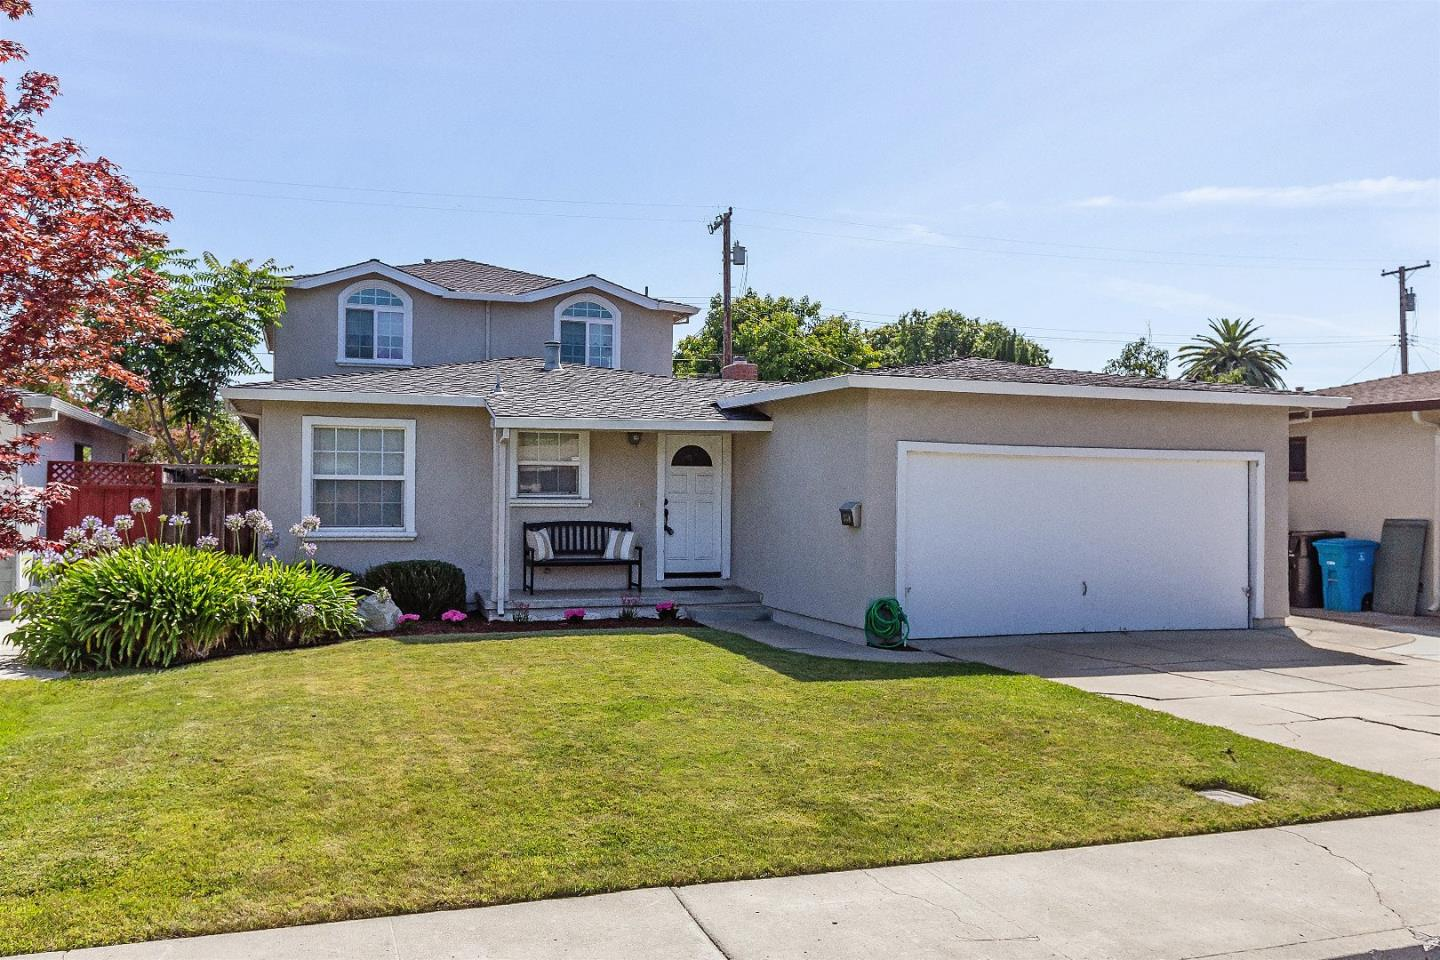 Detail Gallery Image 1 of 24 For 659 San Miguel Ave, Santa Clara, CA 95050 - 6 Beds | 3/1 Baths